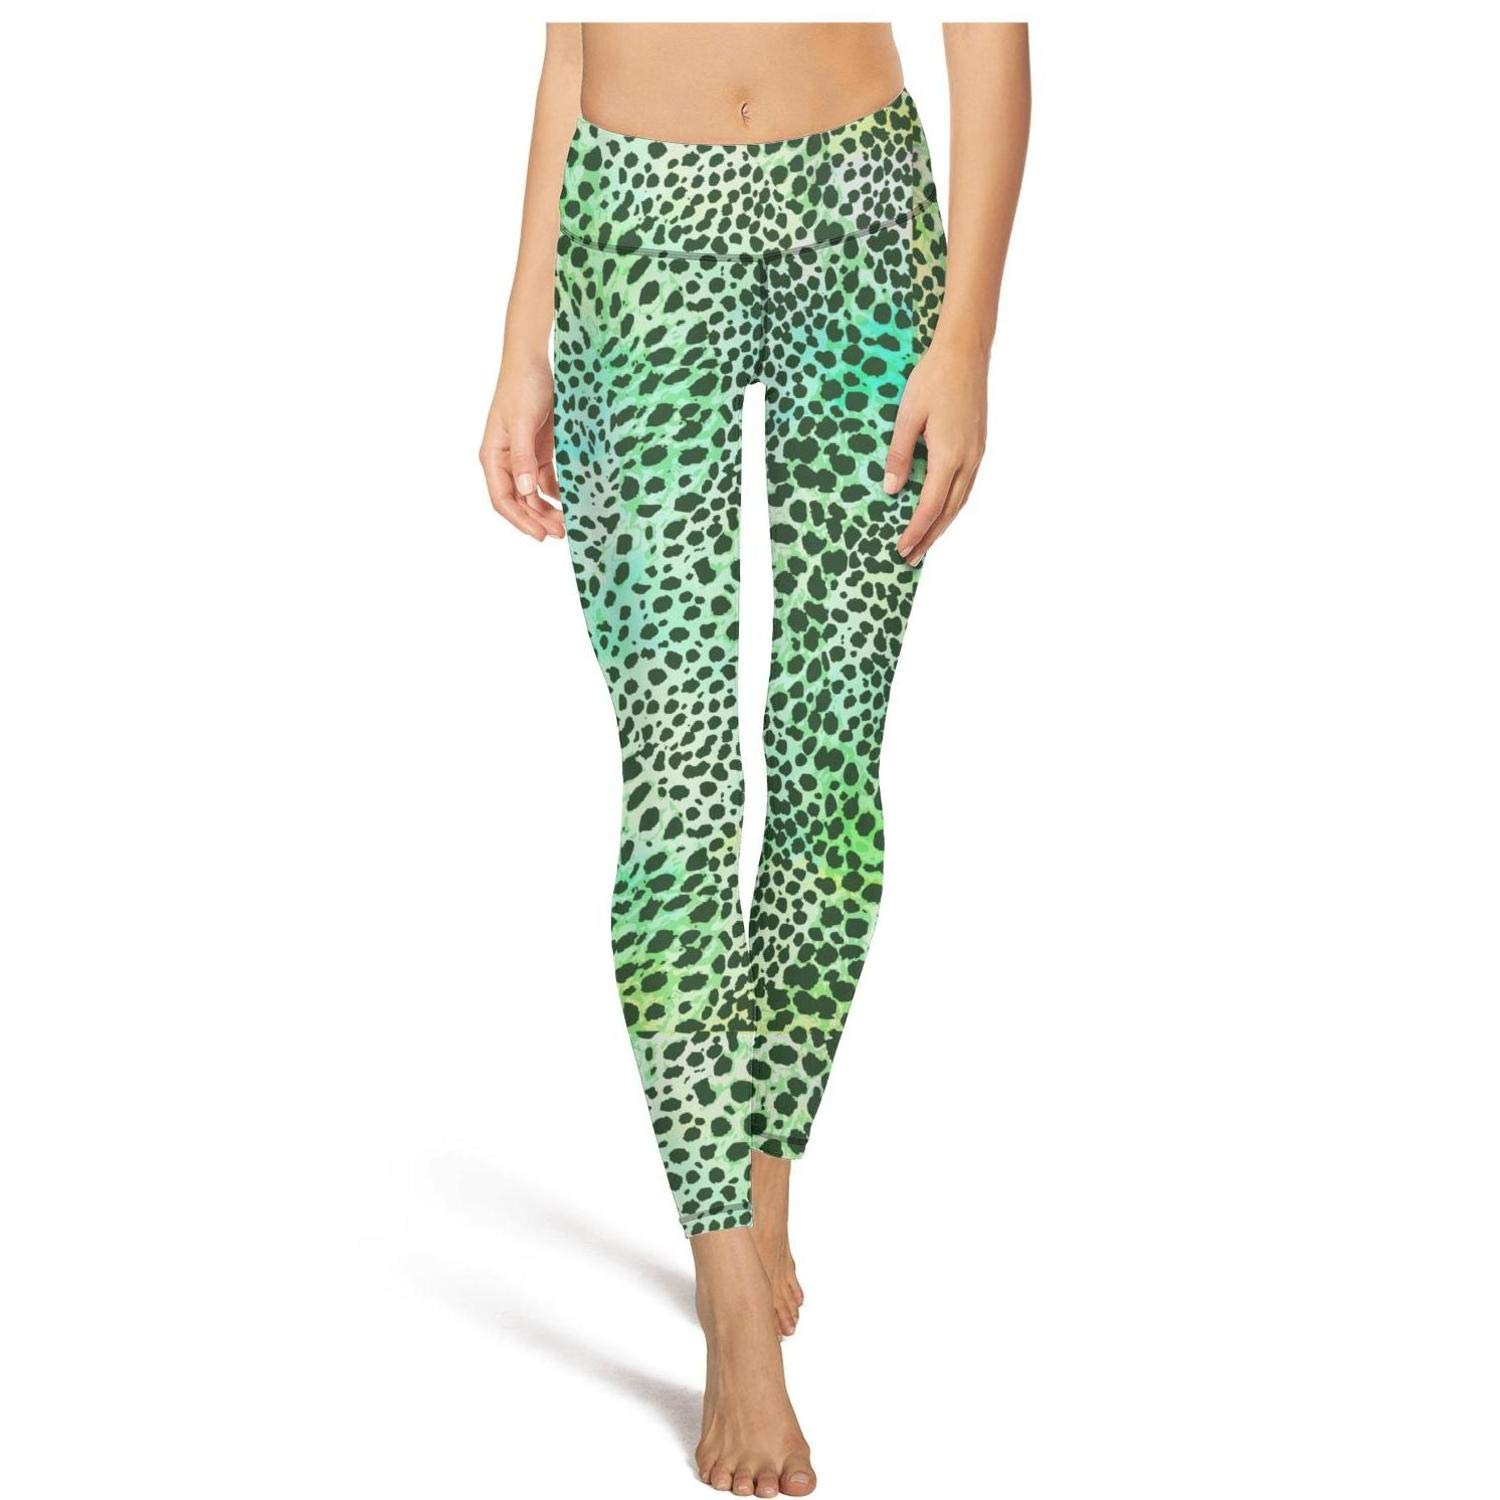 3229c9950076d3 PLOKINC Yoga Pants with Pockets for Womens Workout Leggings Leopard Cheetah  Print Yellow Green High Waist Girls Tights at Amazon Women's Clothing store: